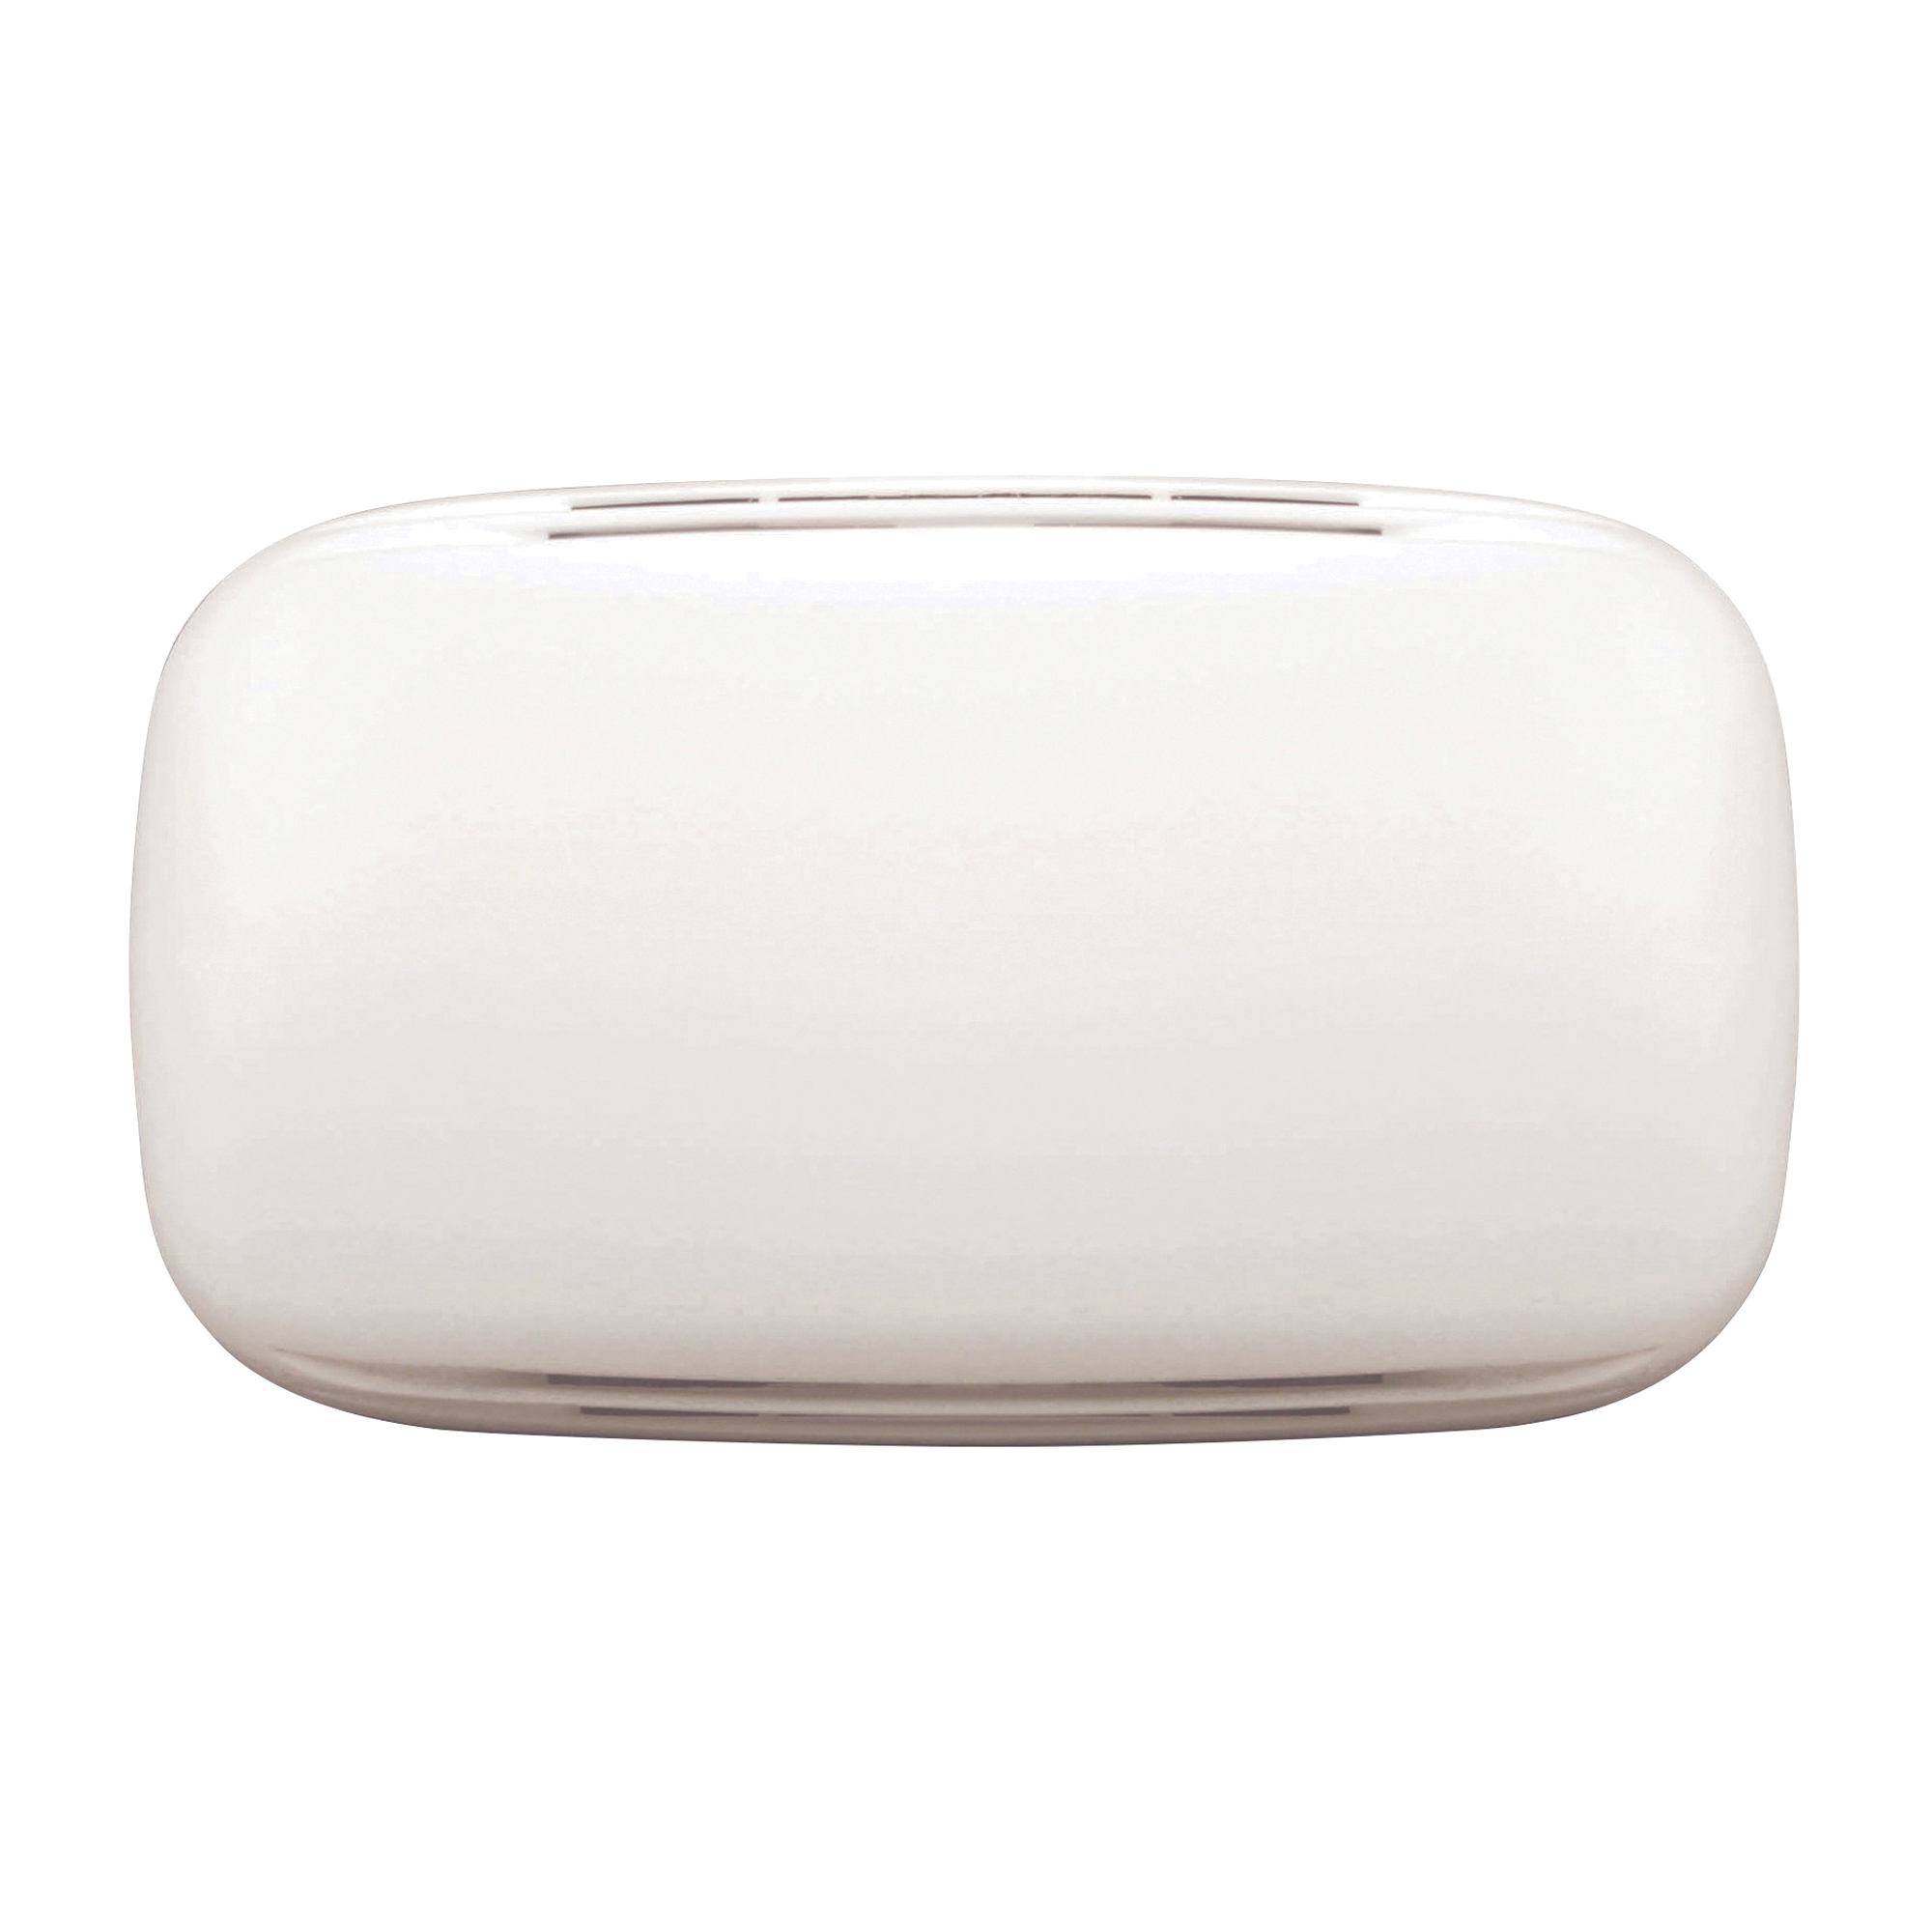 Picture of Heath Zenith SL-2735-02 Doorbell with Cover, Ding, Ding-Dong Tone, 87 dB, White